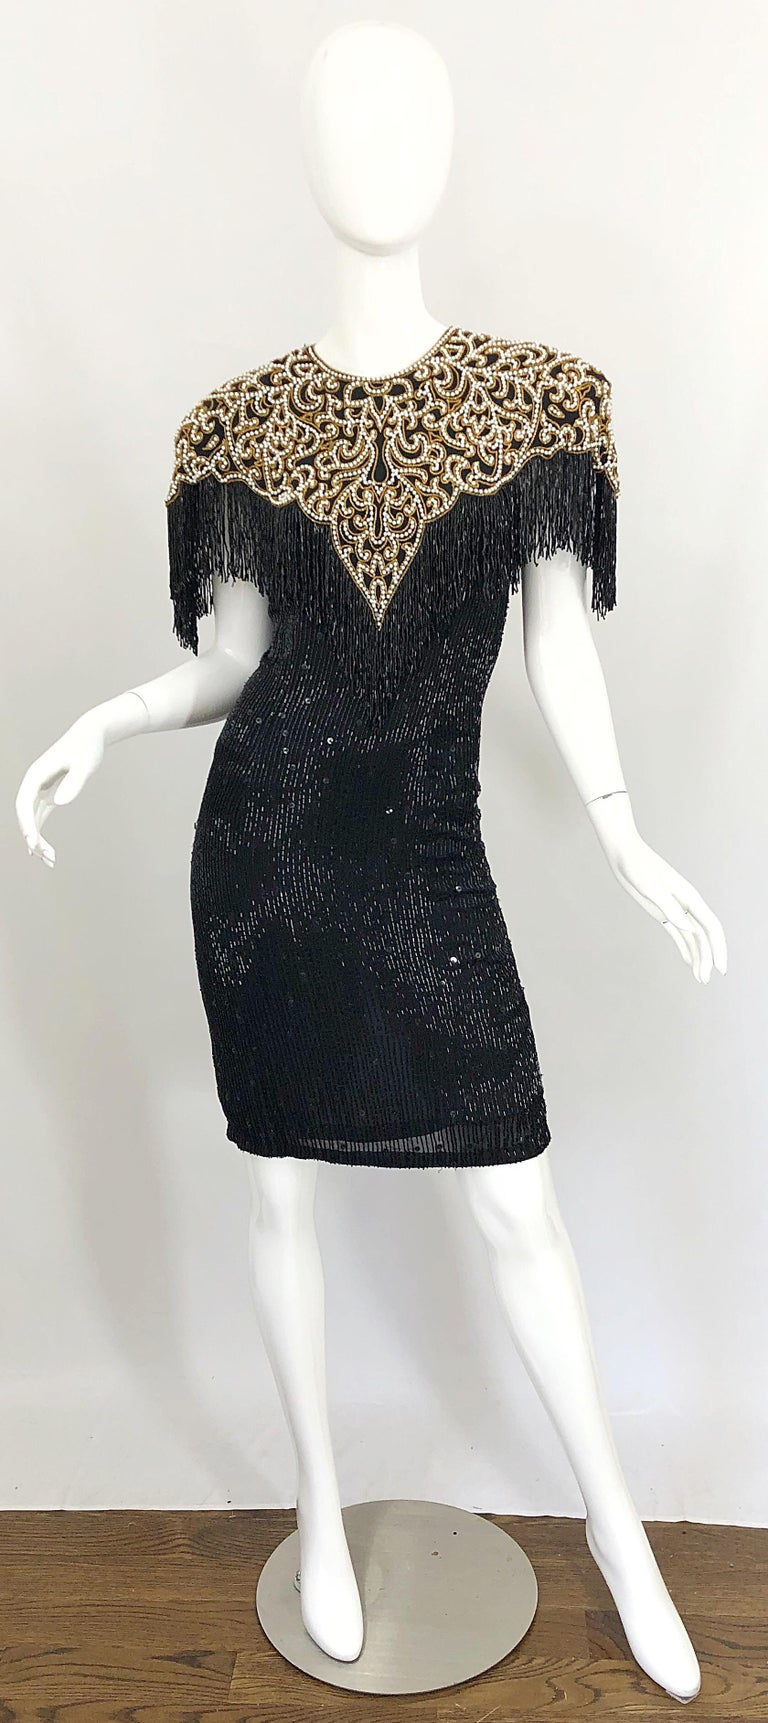 Vintage Naeem Khan Riazee Black Beaded + Pearl Encrusted Fringe Silk Dress In Excellent Condition For Sale In Chicago, IL